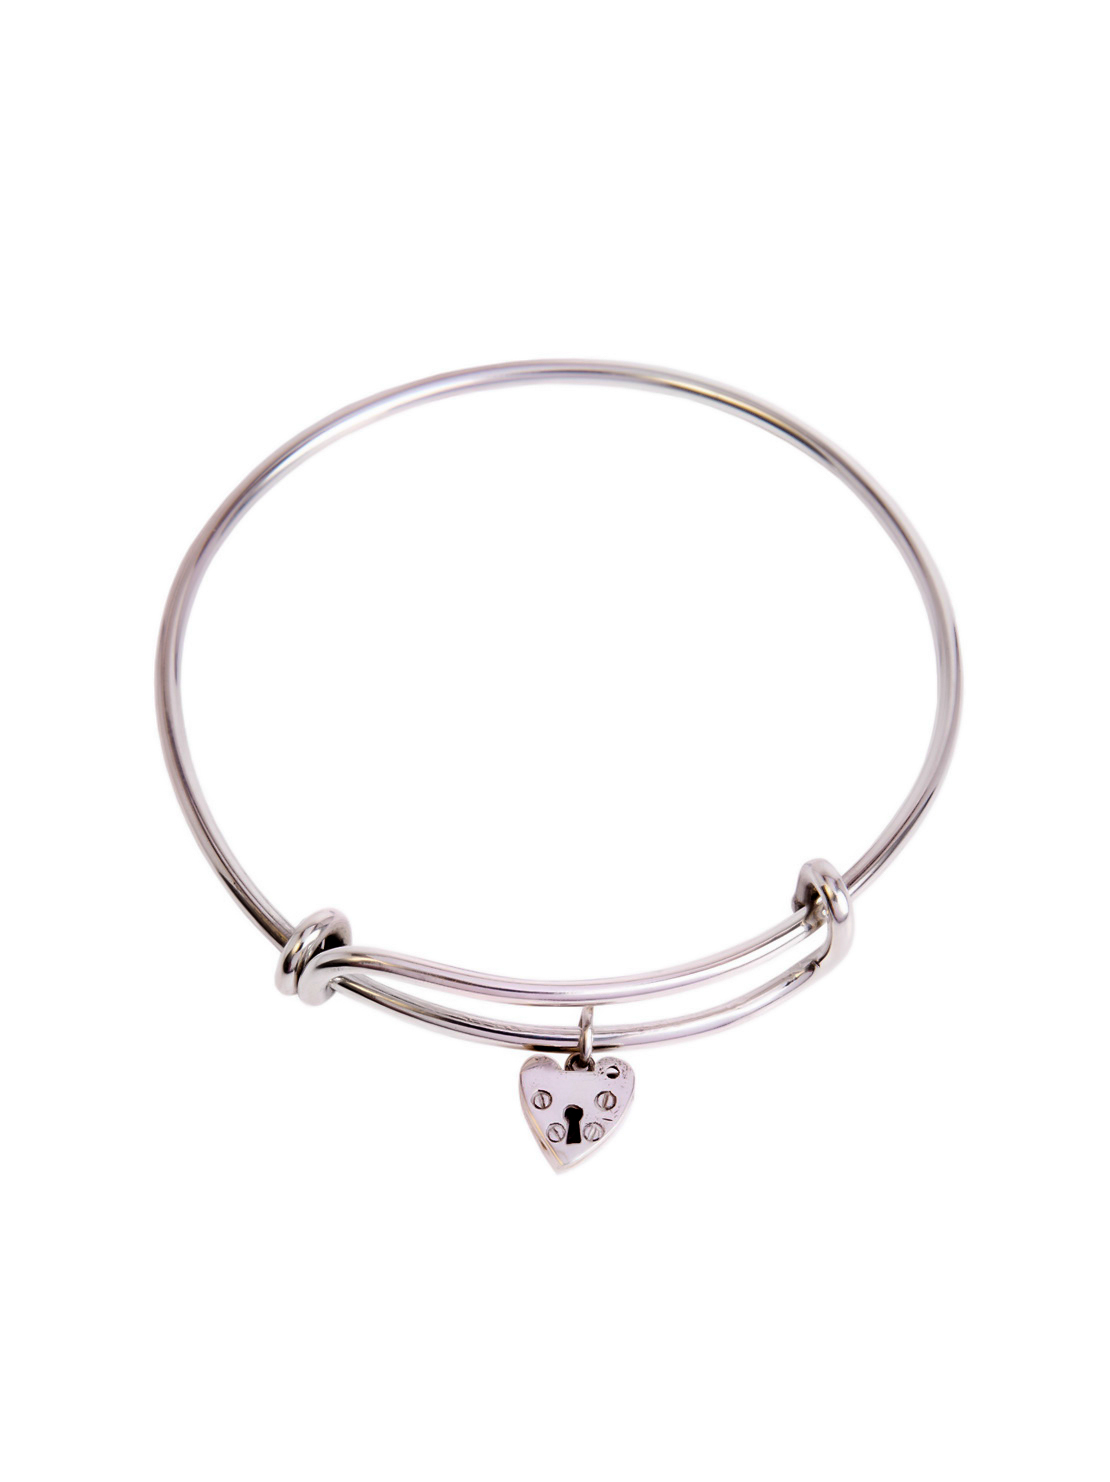 Silver Charm Bangle With Silver Heart